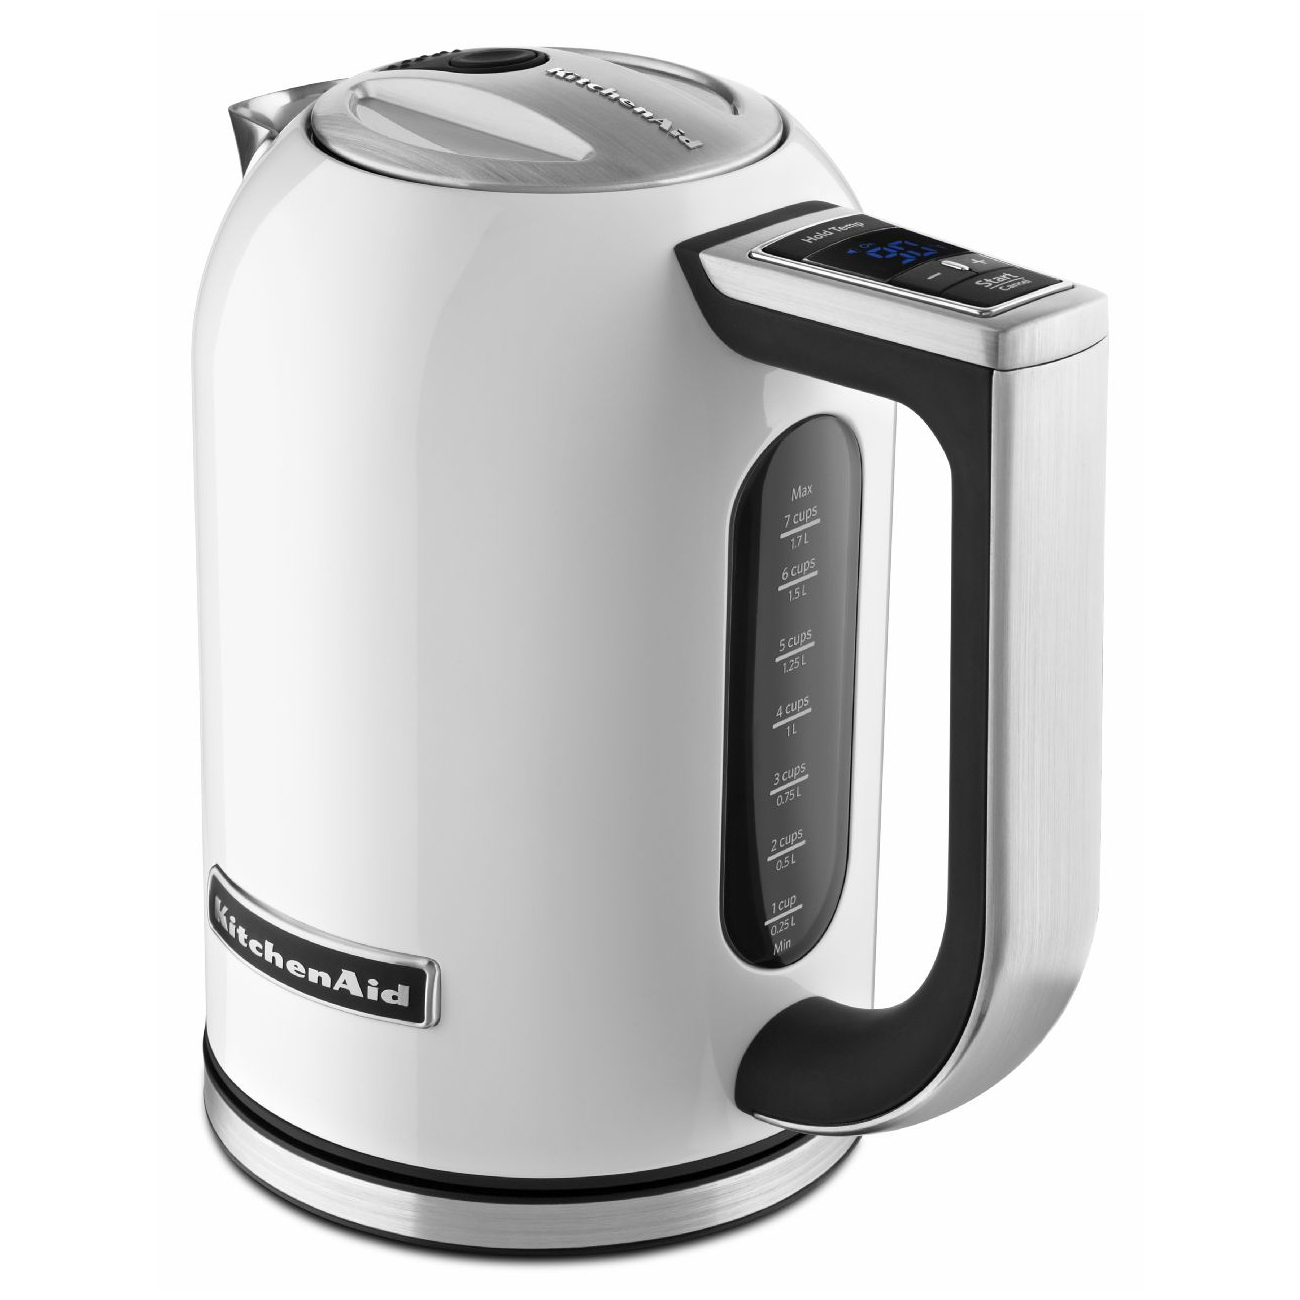 KitchenAid KEK1722WH White 1.7 Liter Electric Kettle with LED Display